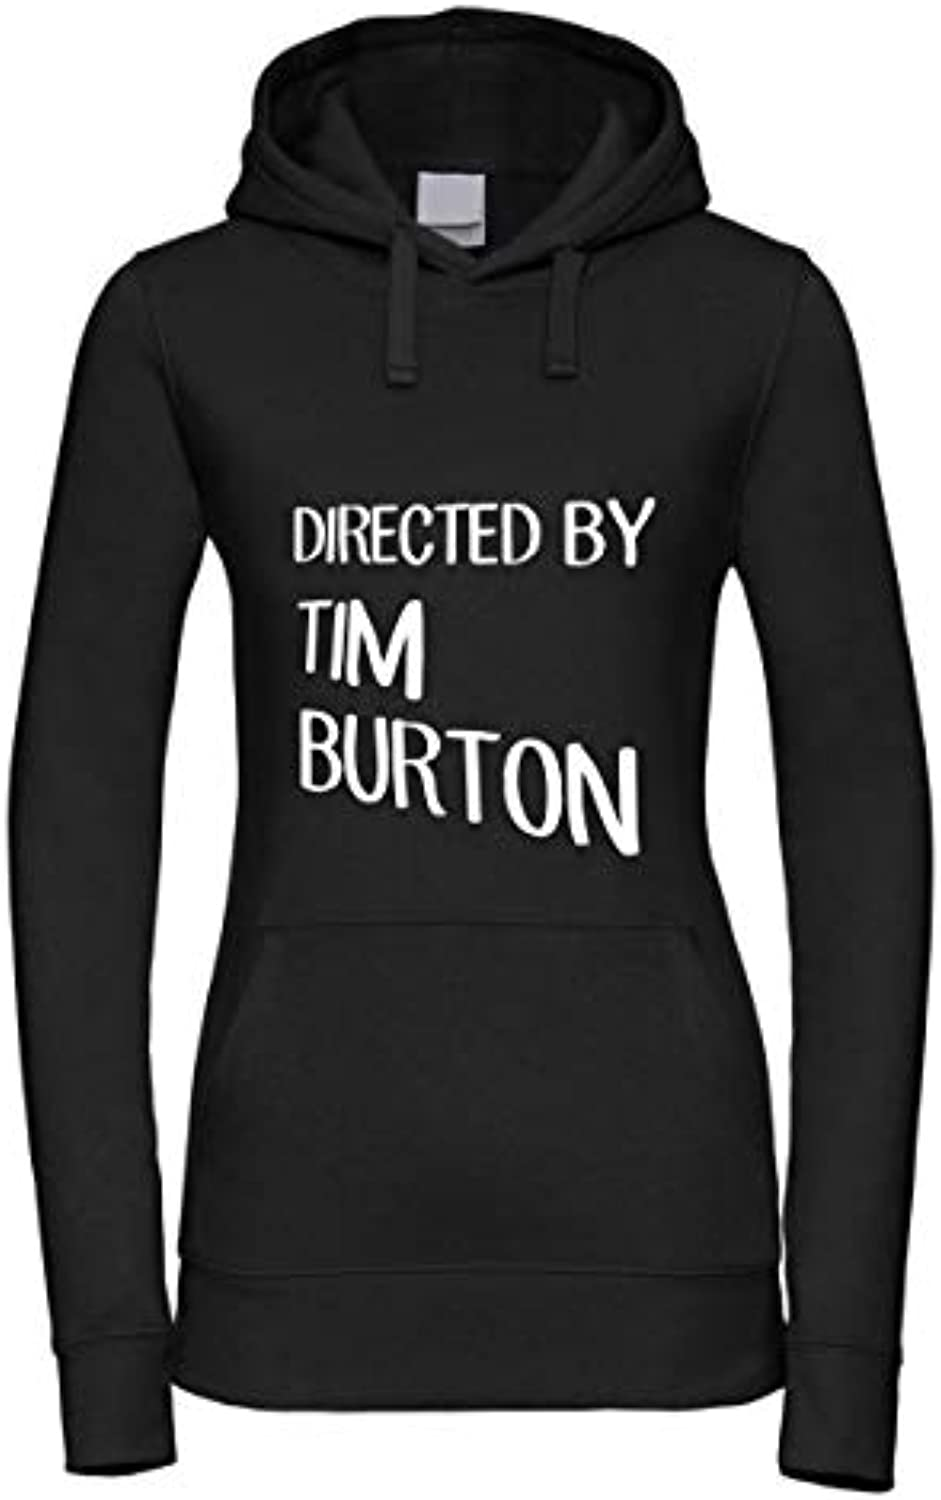 Felpa Donna con Cappuccio Made -Directed by Tim Burton- Made Cappuccio in  0a8c37 fbf2b5042227